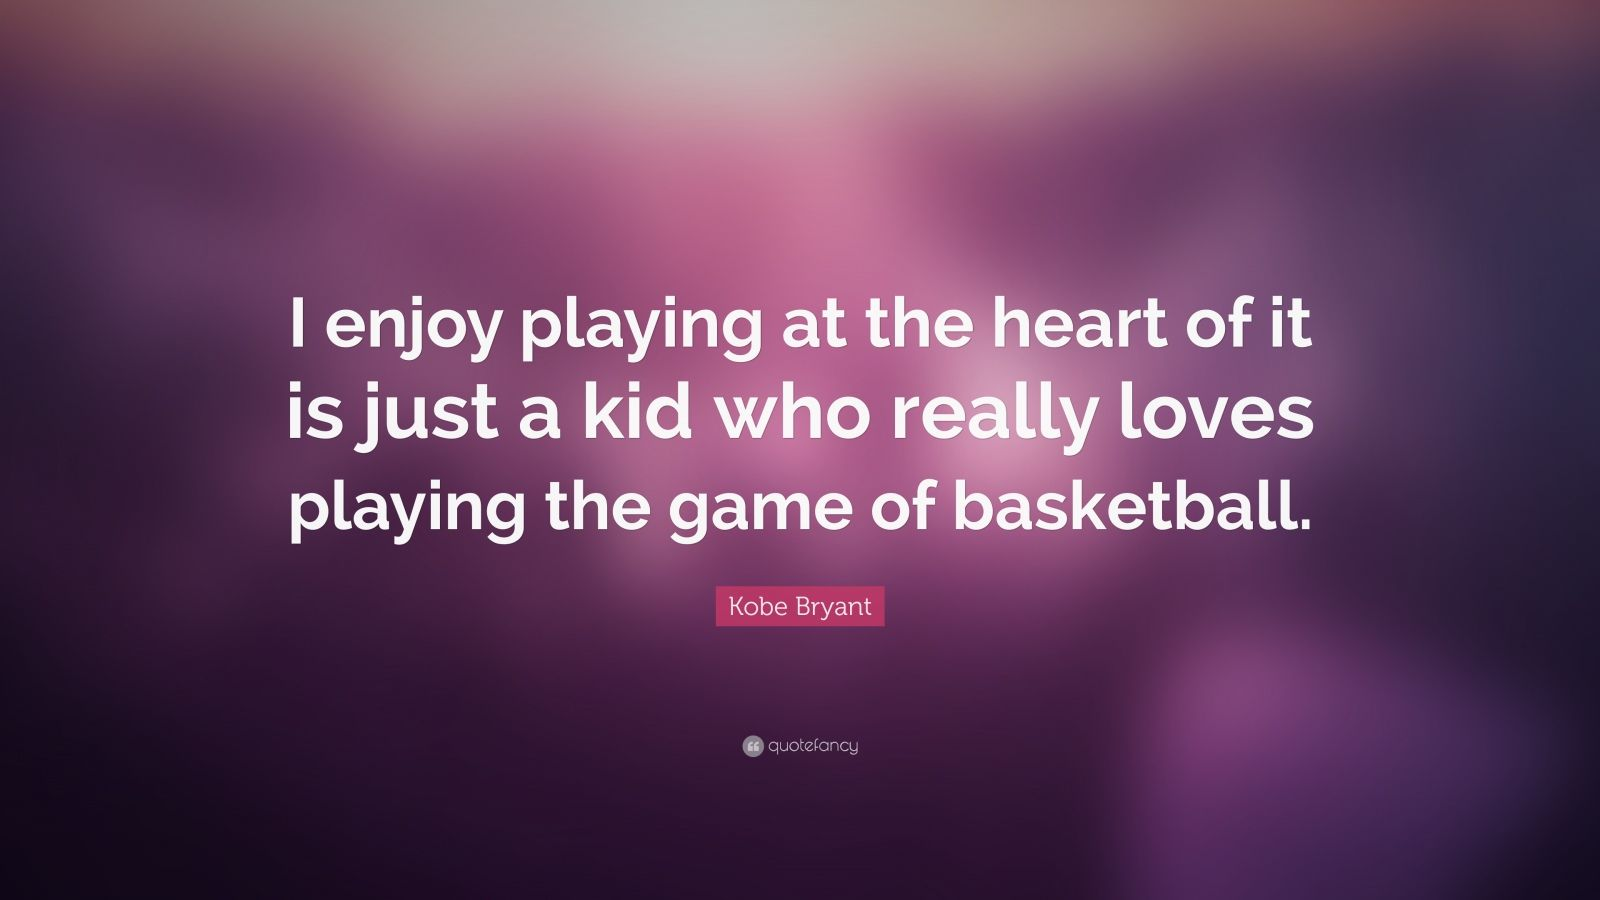 """Kobe Bryant Quote: """"I enjoy playing at the heart of it is just a kid who really loves playing the game of basketball."""""""